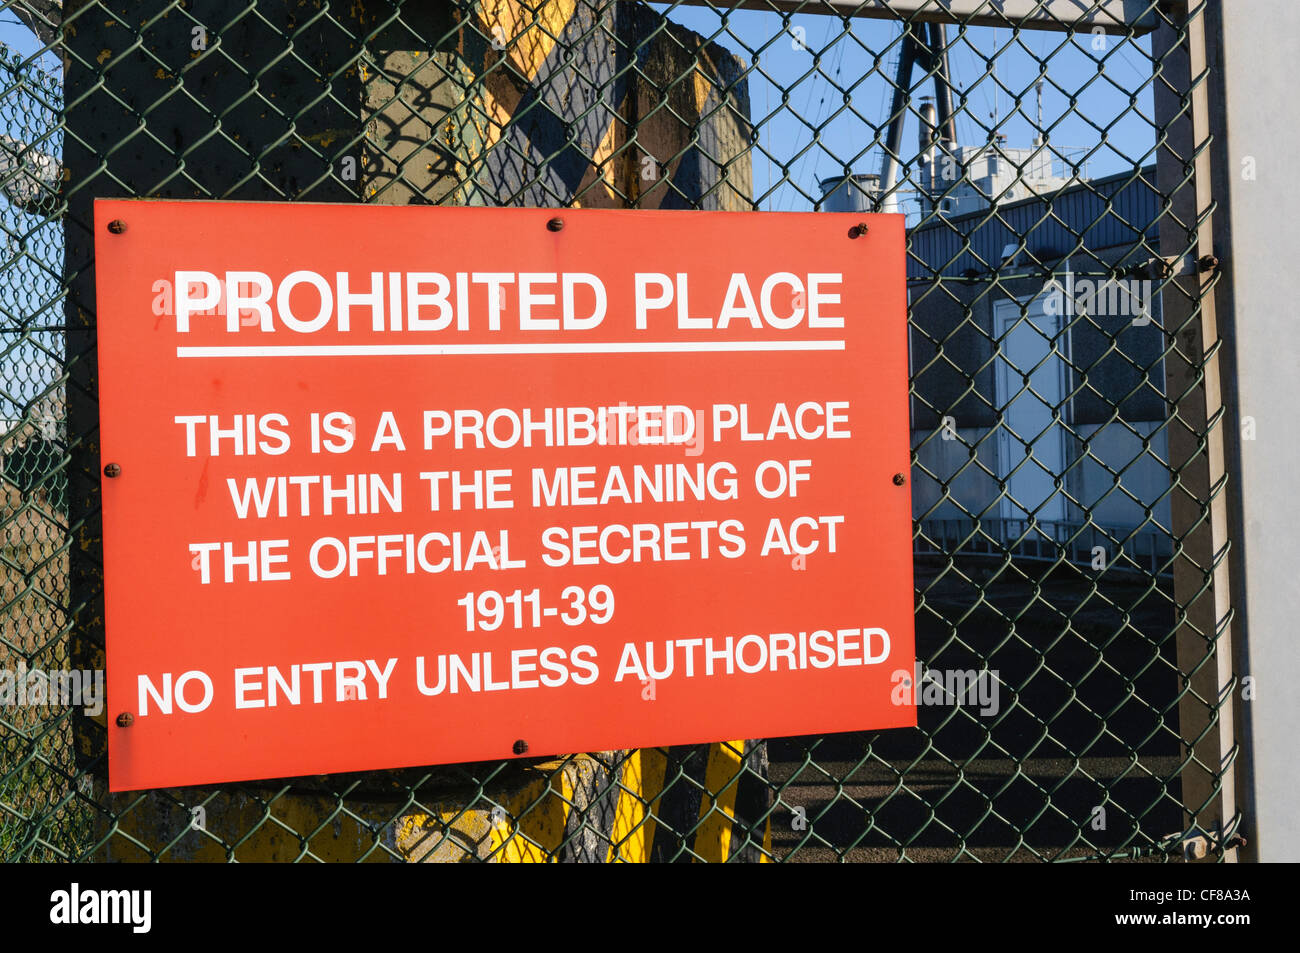 Prohibited place sign at a highly secure military location - Stock Image